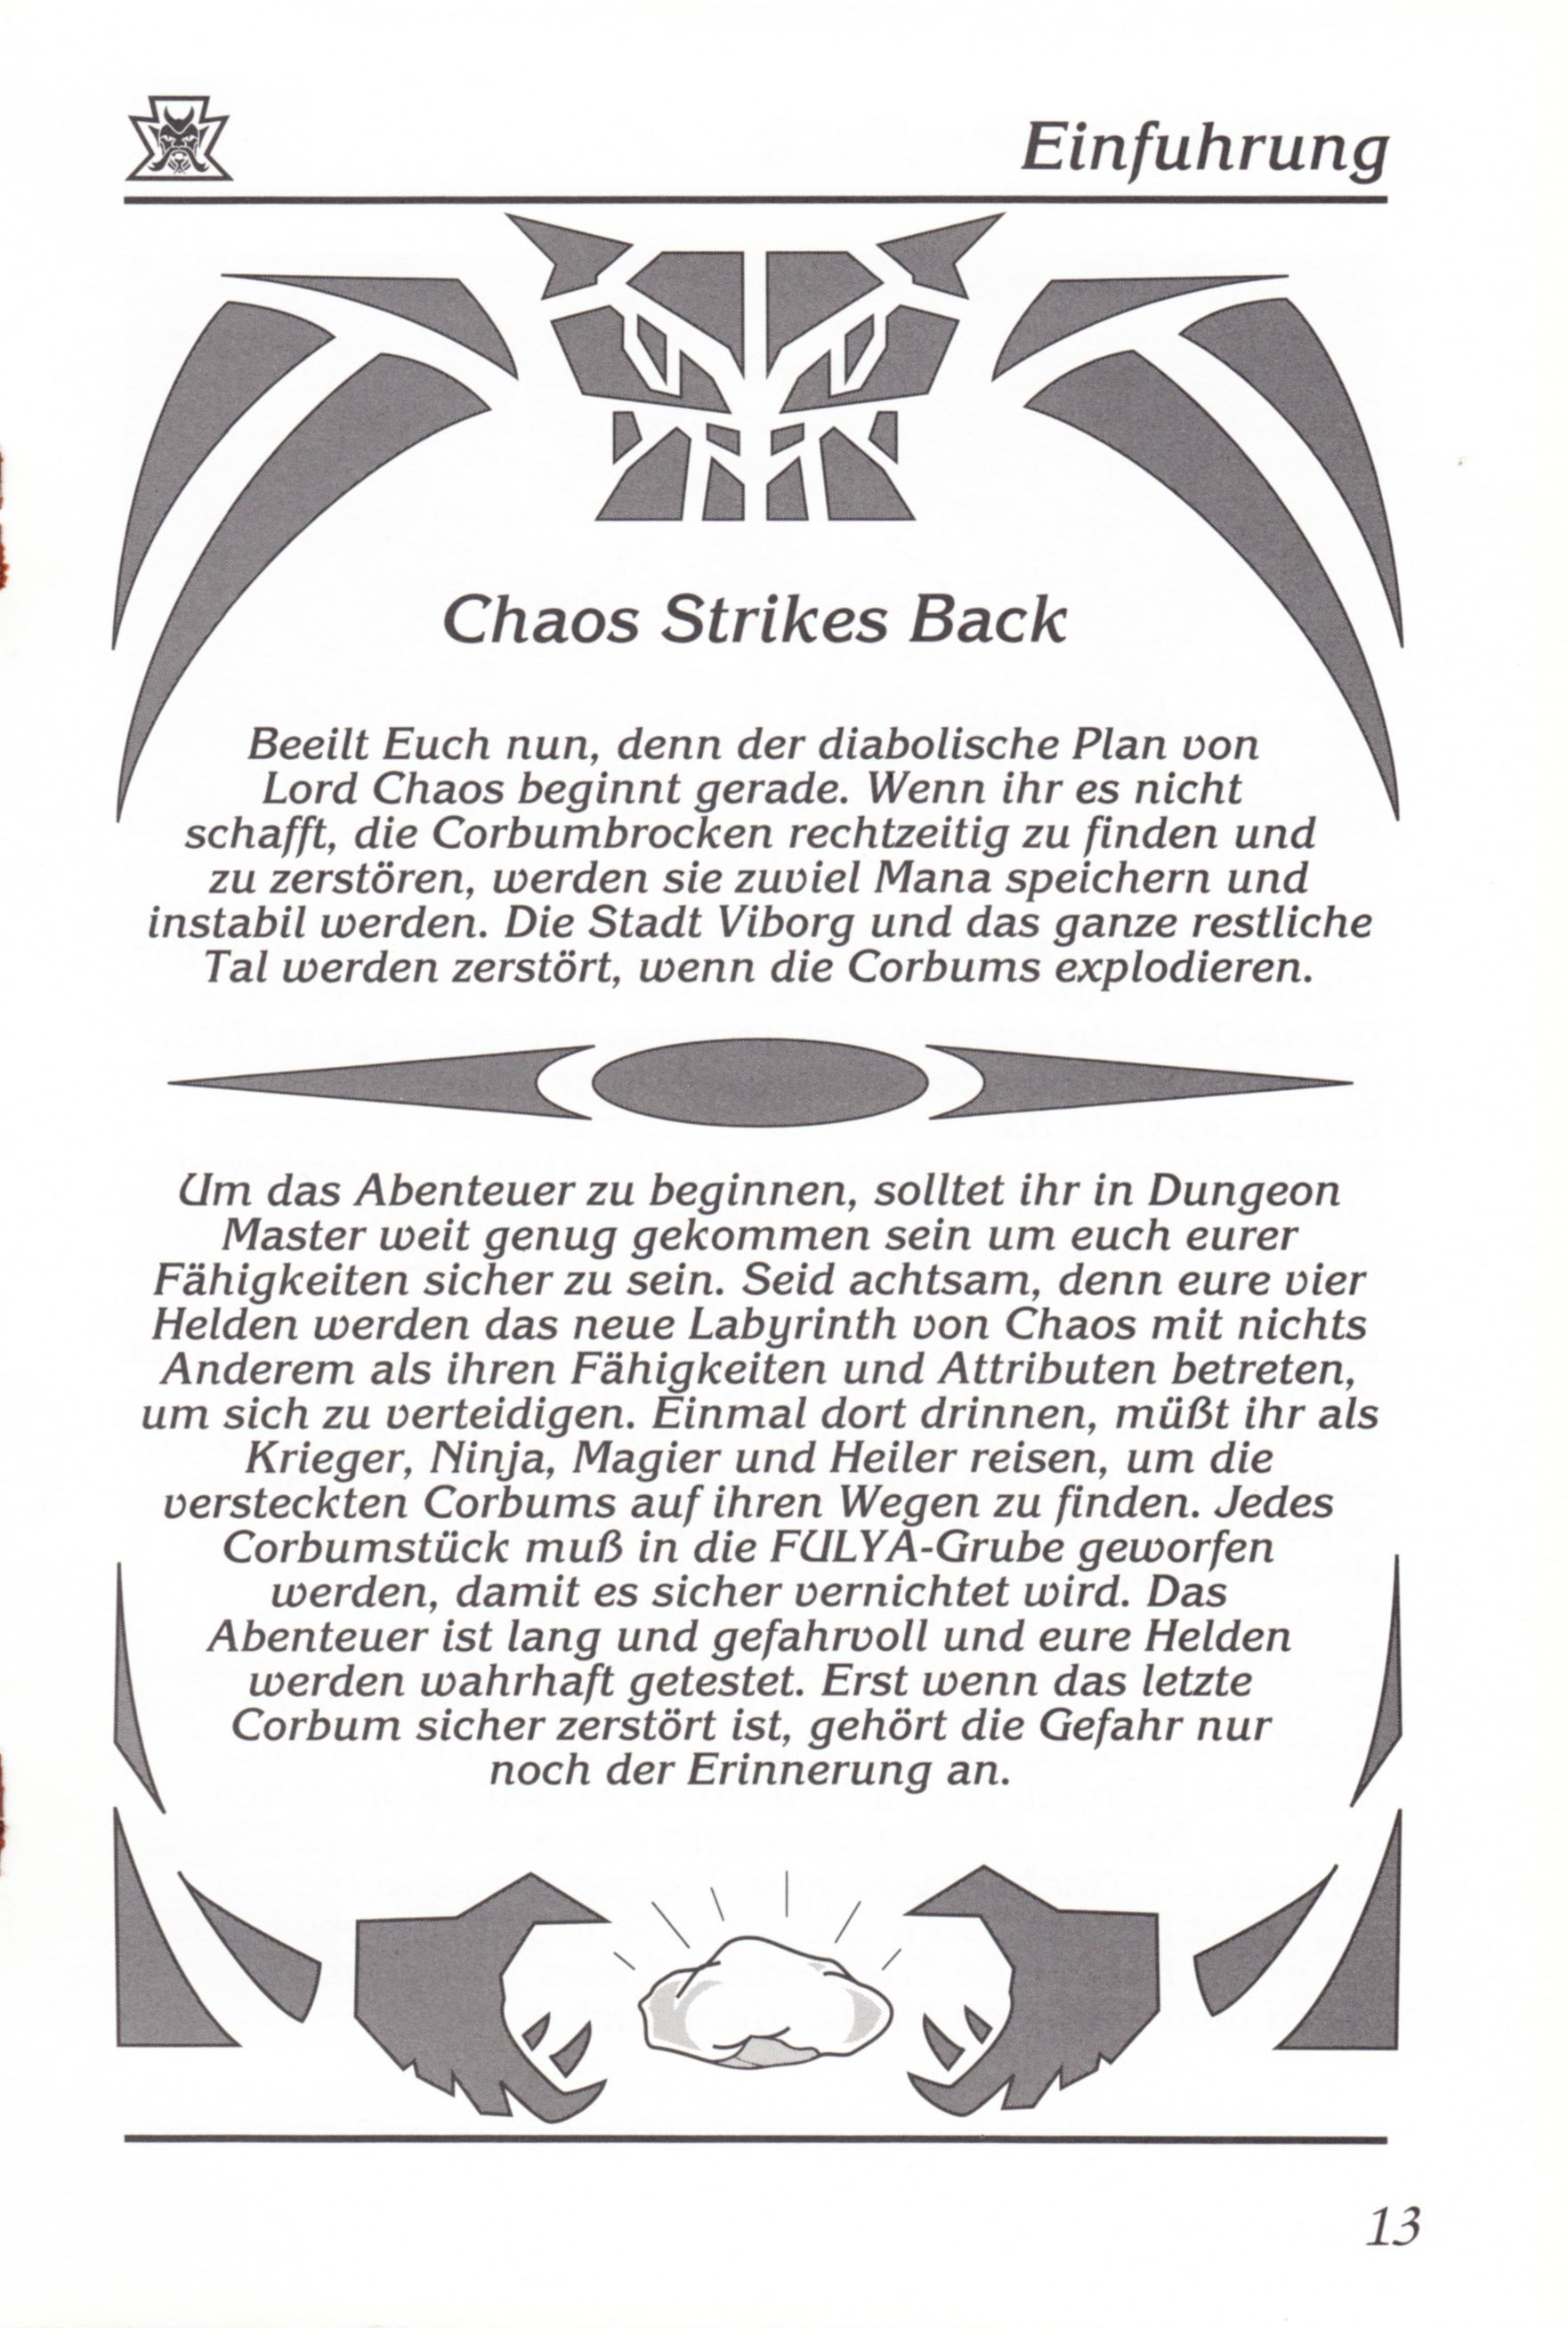 Game - Chaos Strikes Back - DE - Amiga - Manual - Page 015 - Scan